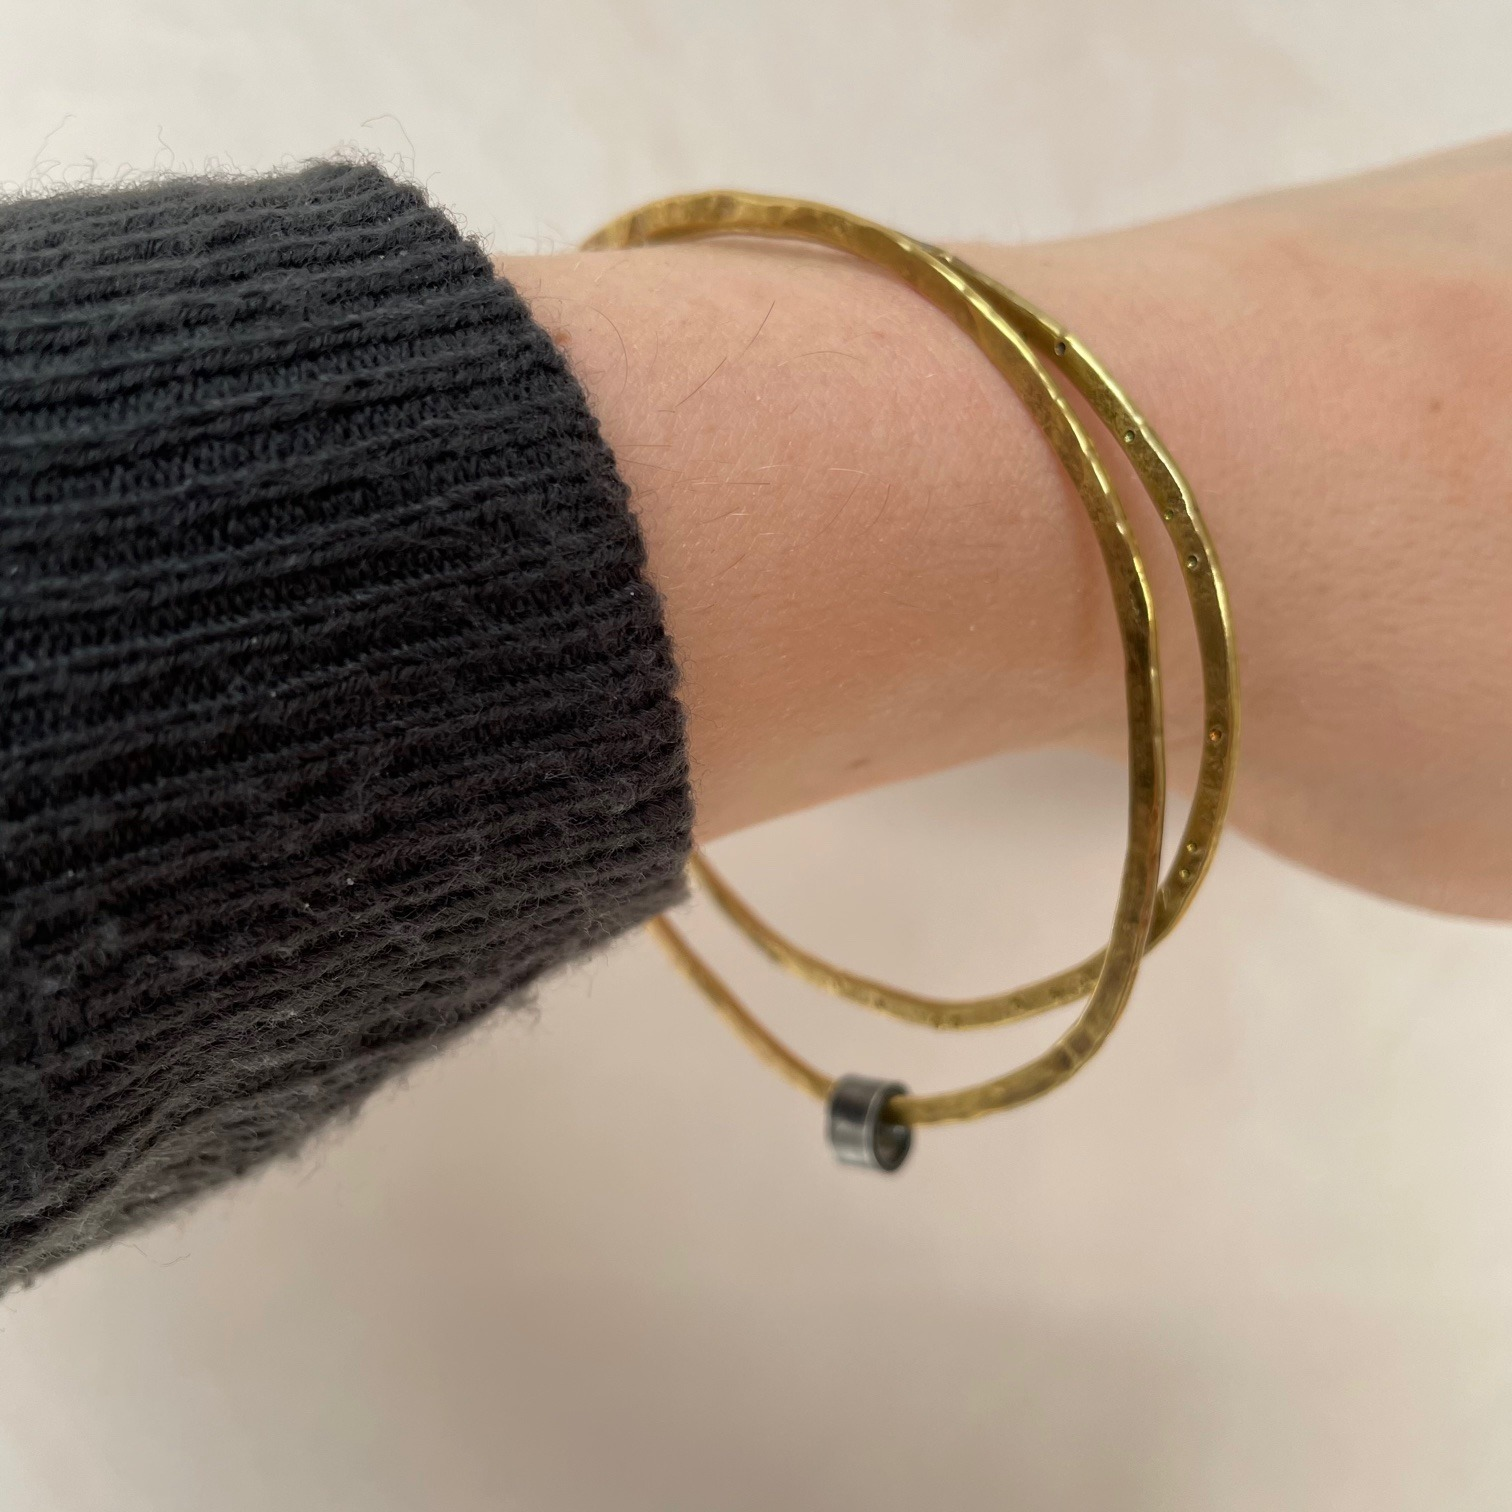 Hammered brass pebble shaped bangle by Sarah Drew